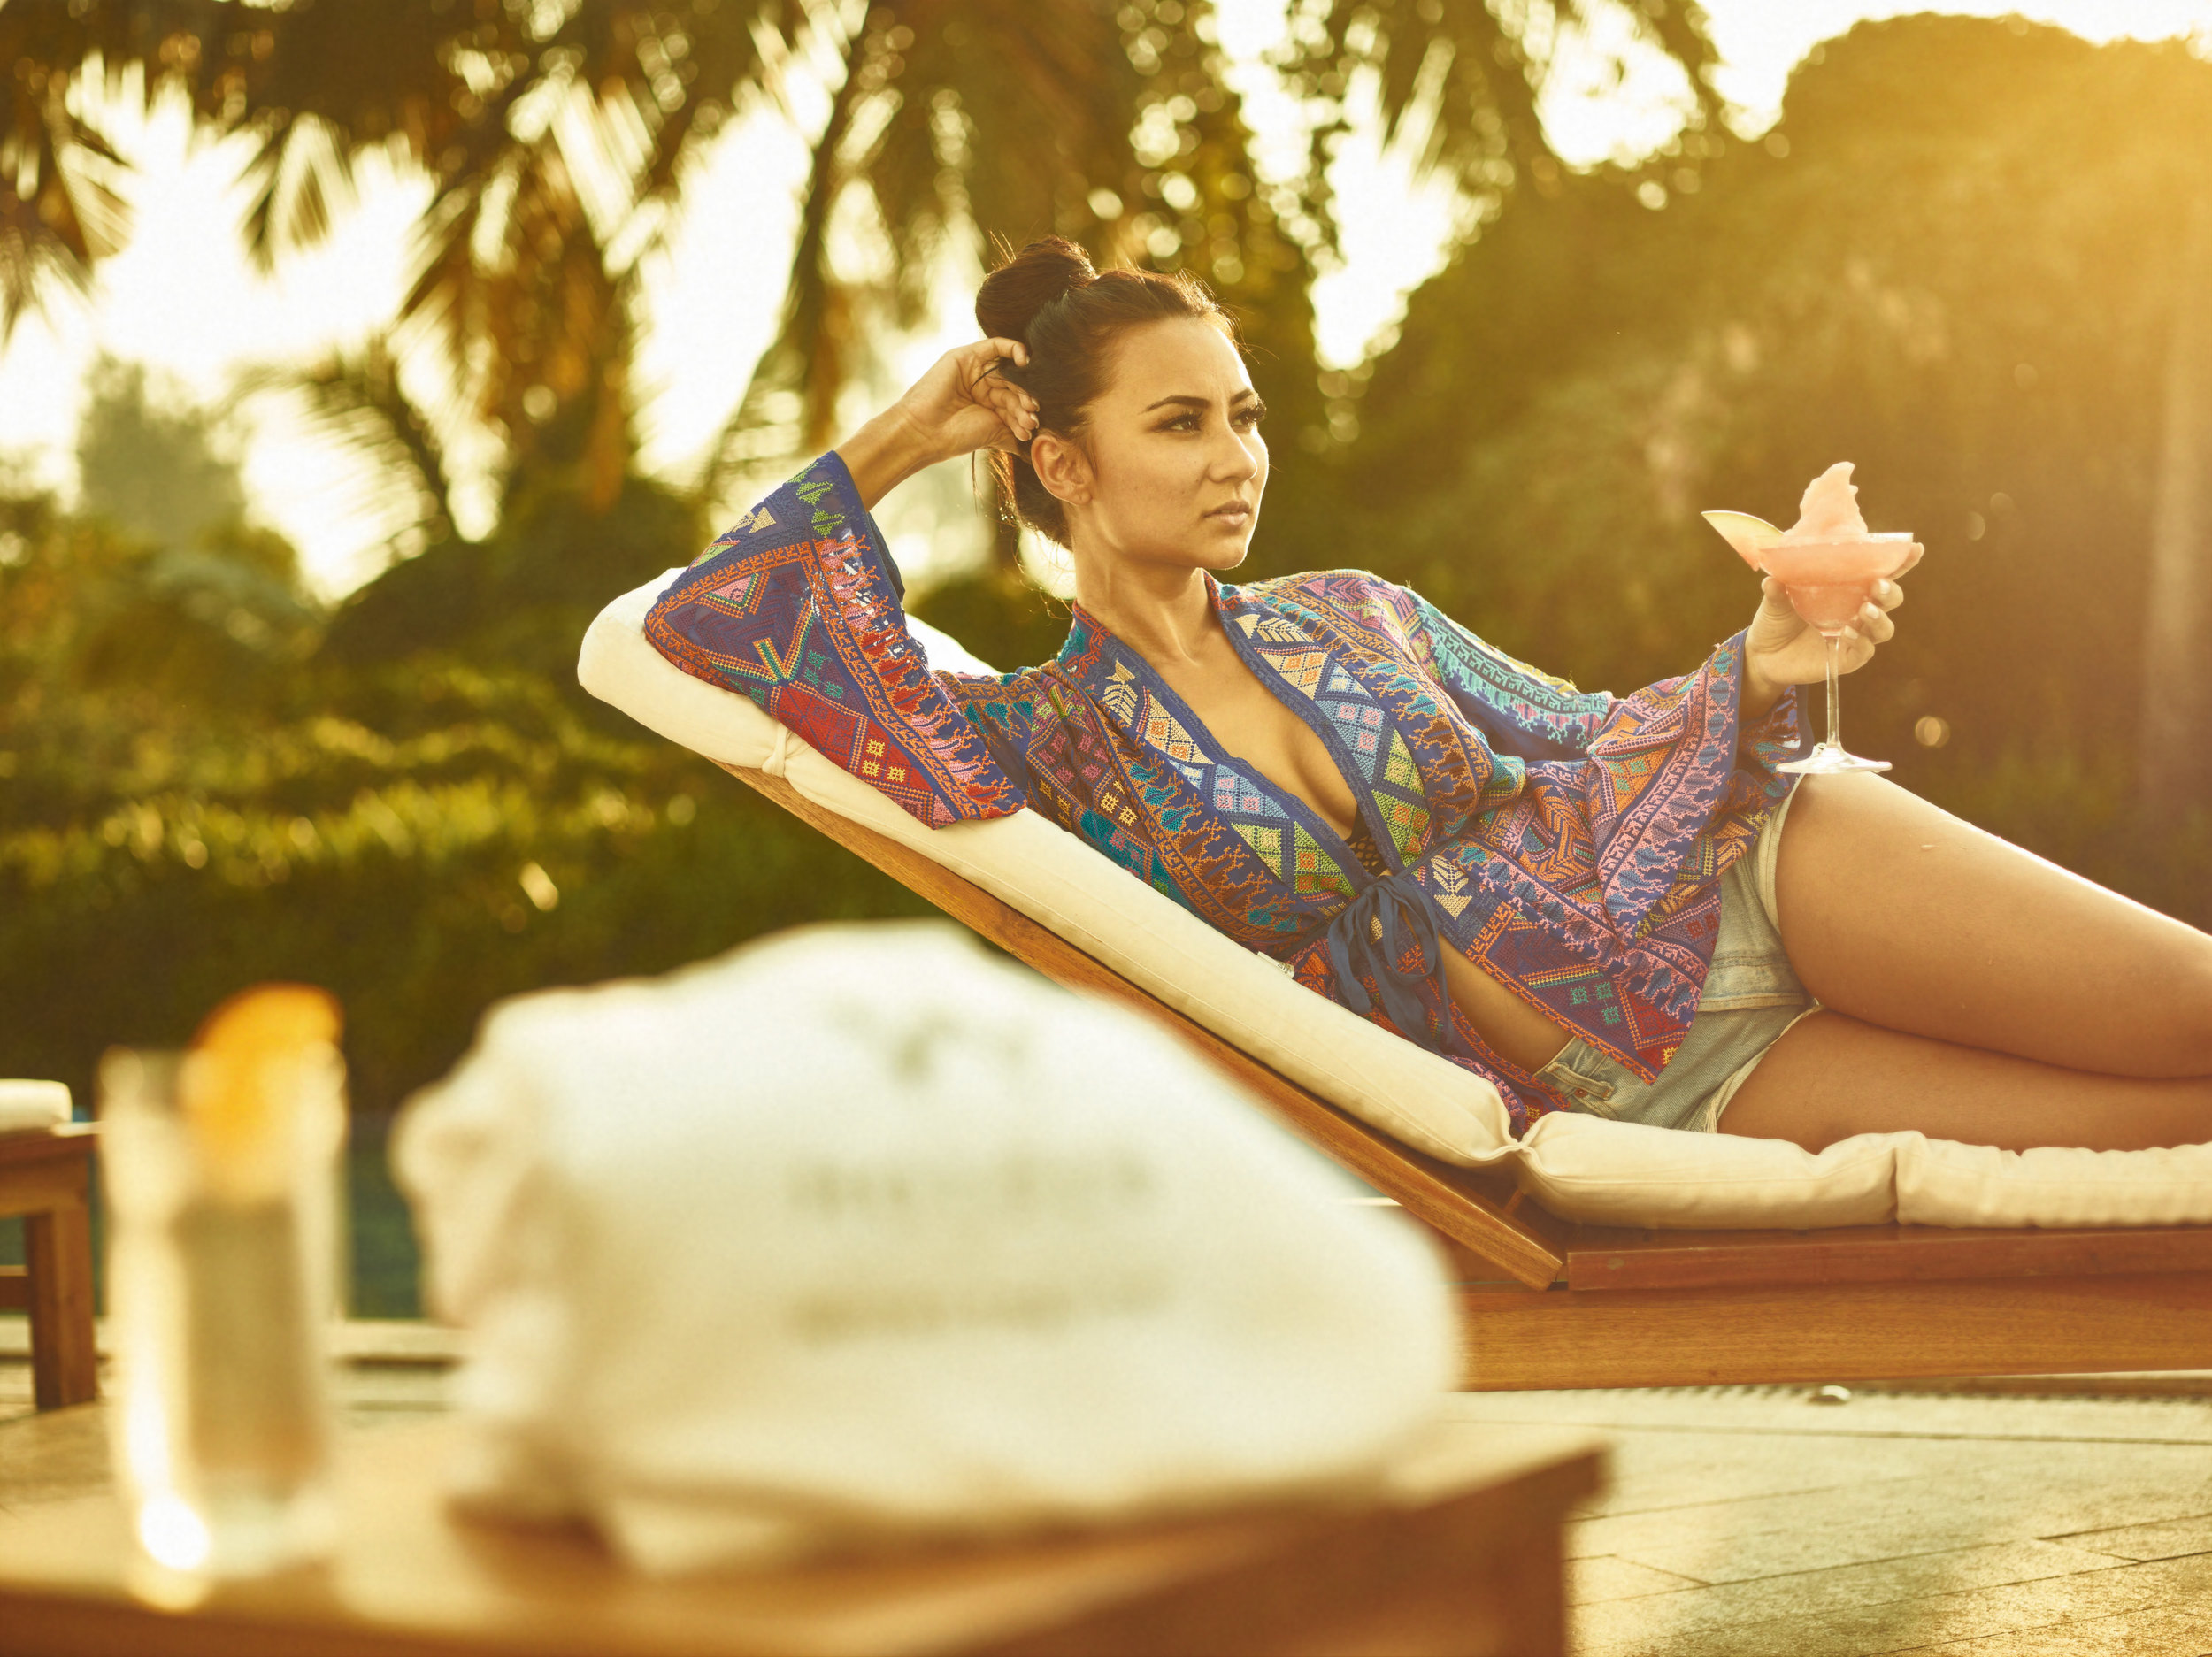 W Hotels Goa lifestyle and poolside shoot commercial photography